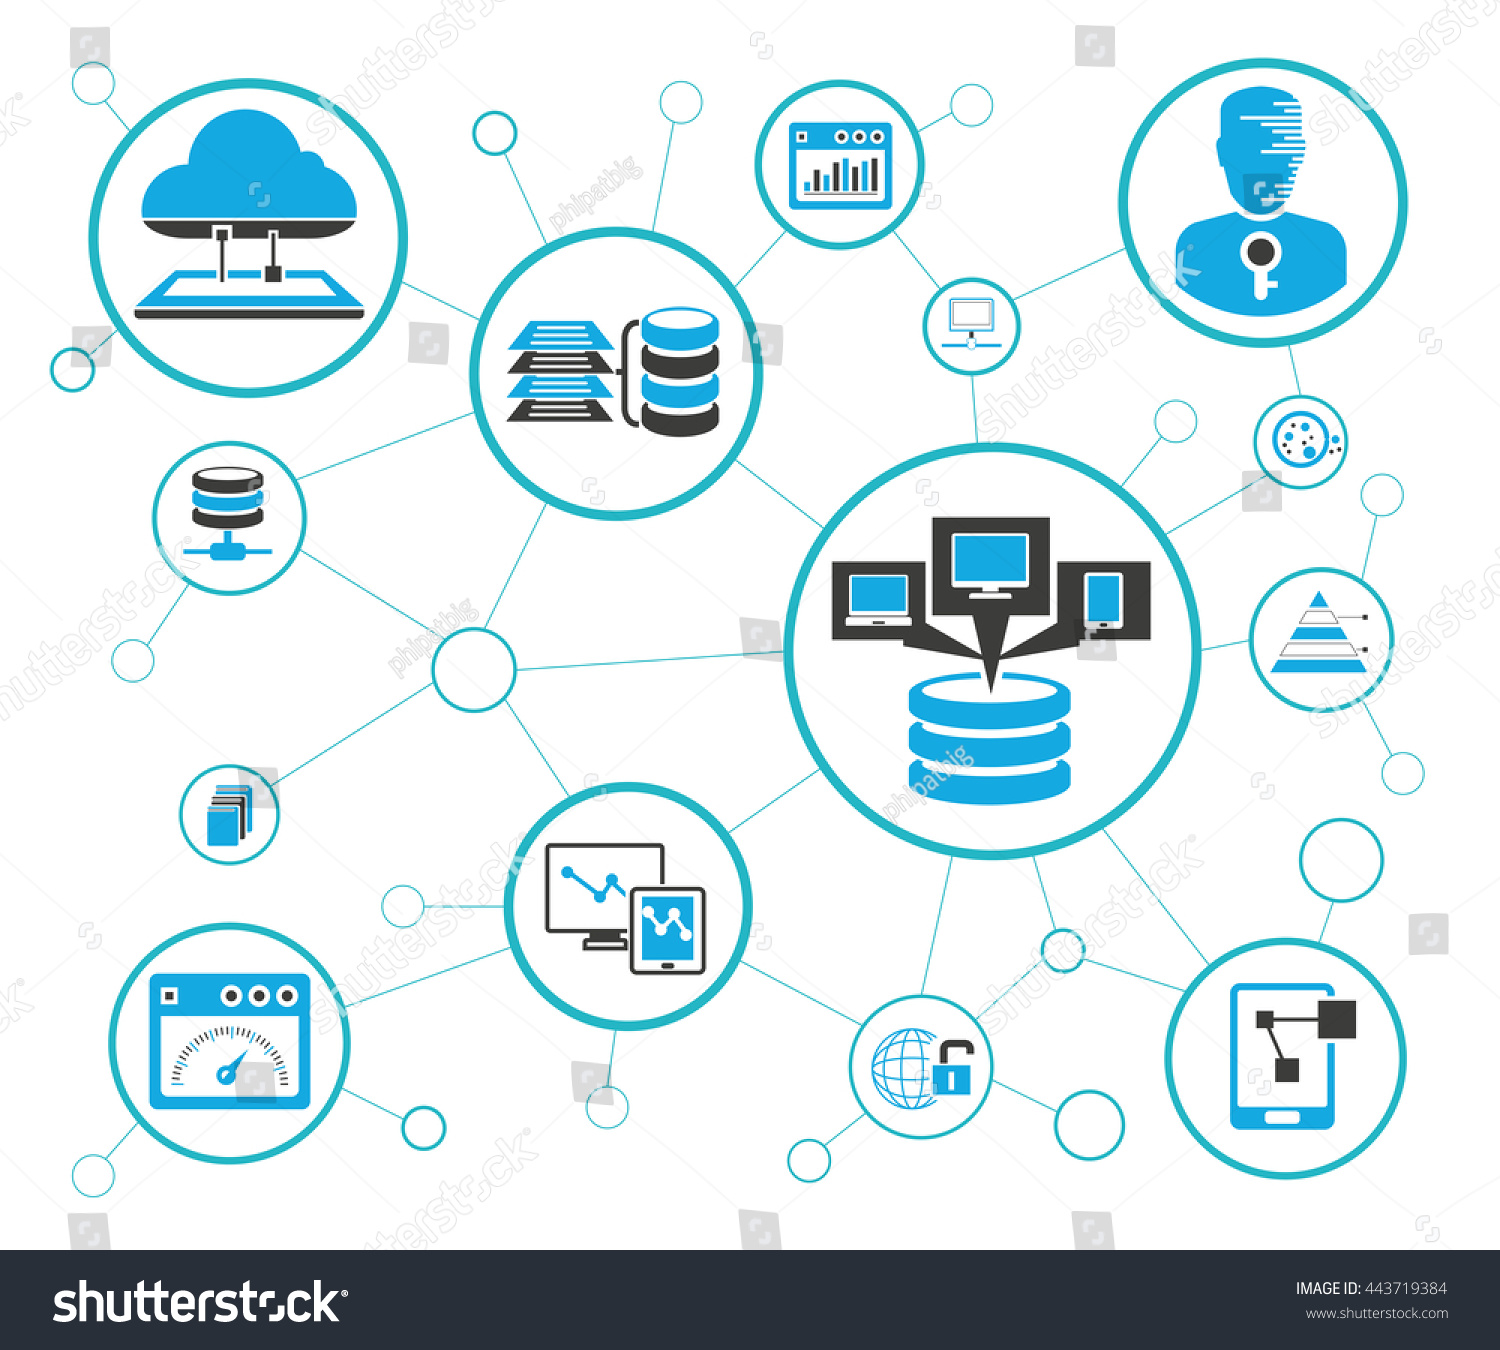 Analytics Data Icons Network Diagram On Stock Vector (Royalty Free ...